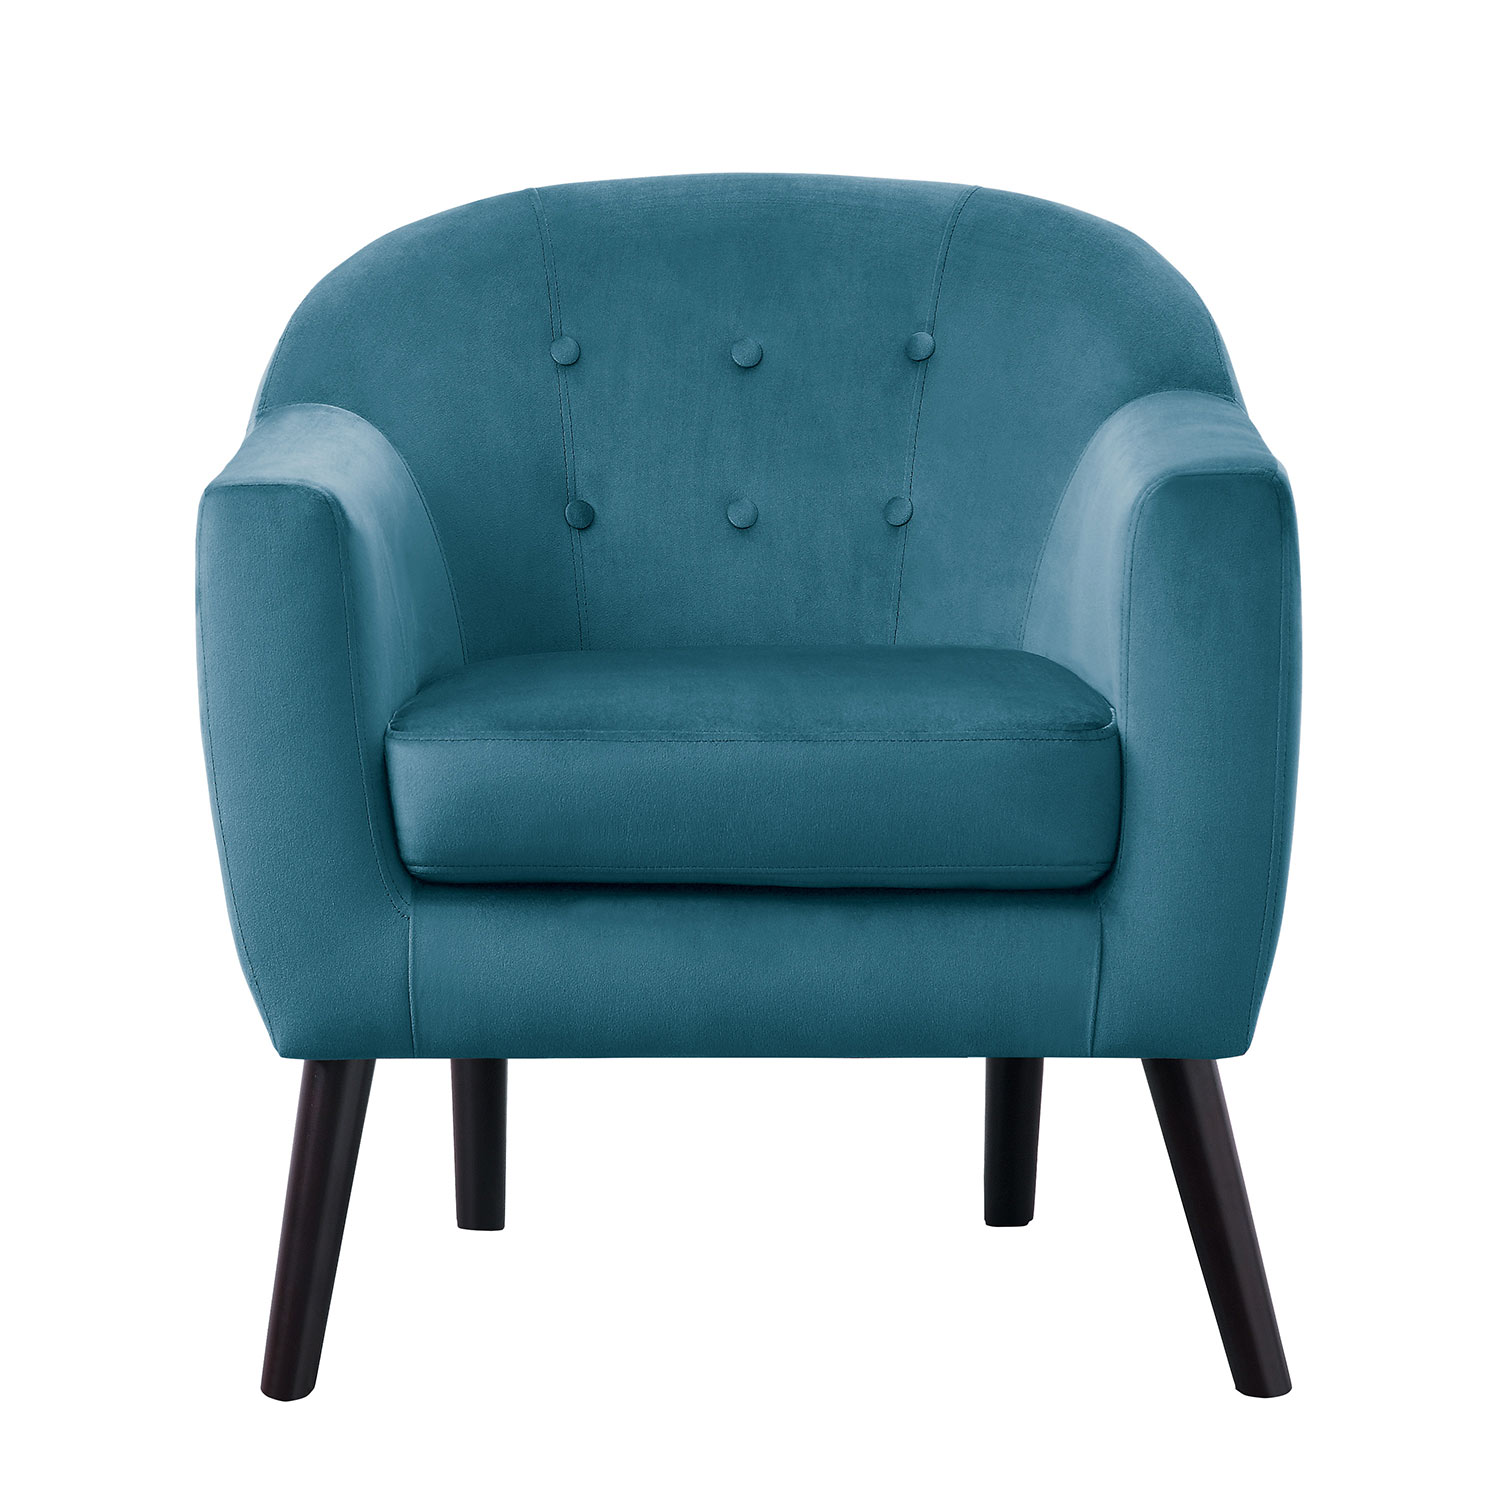 Homelegance Quill Accent Chair - Blue